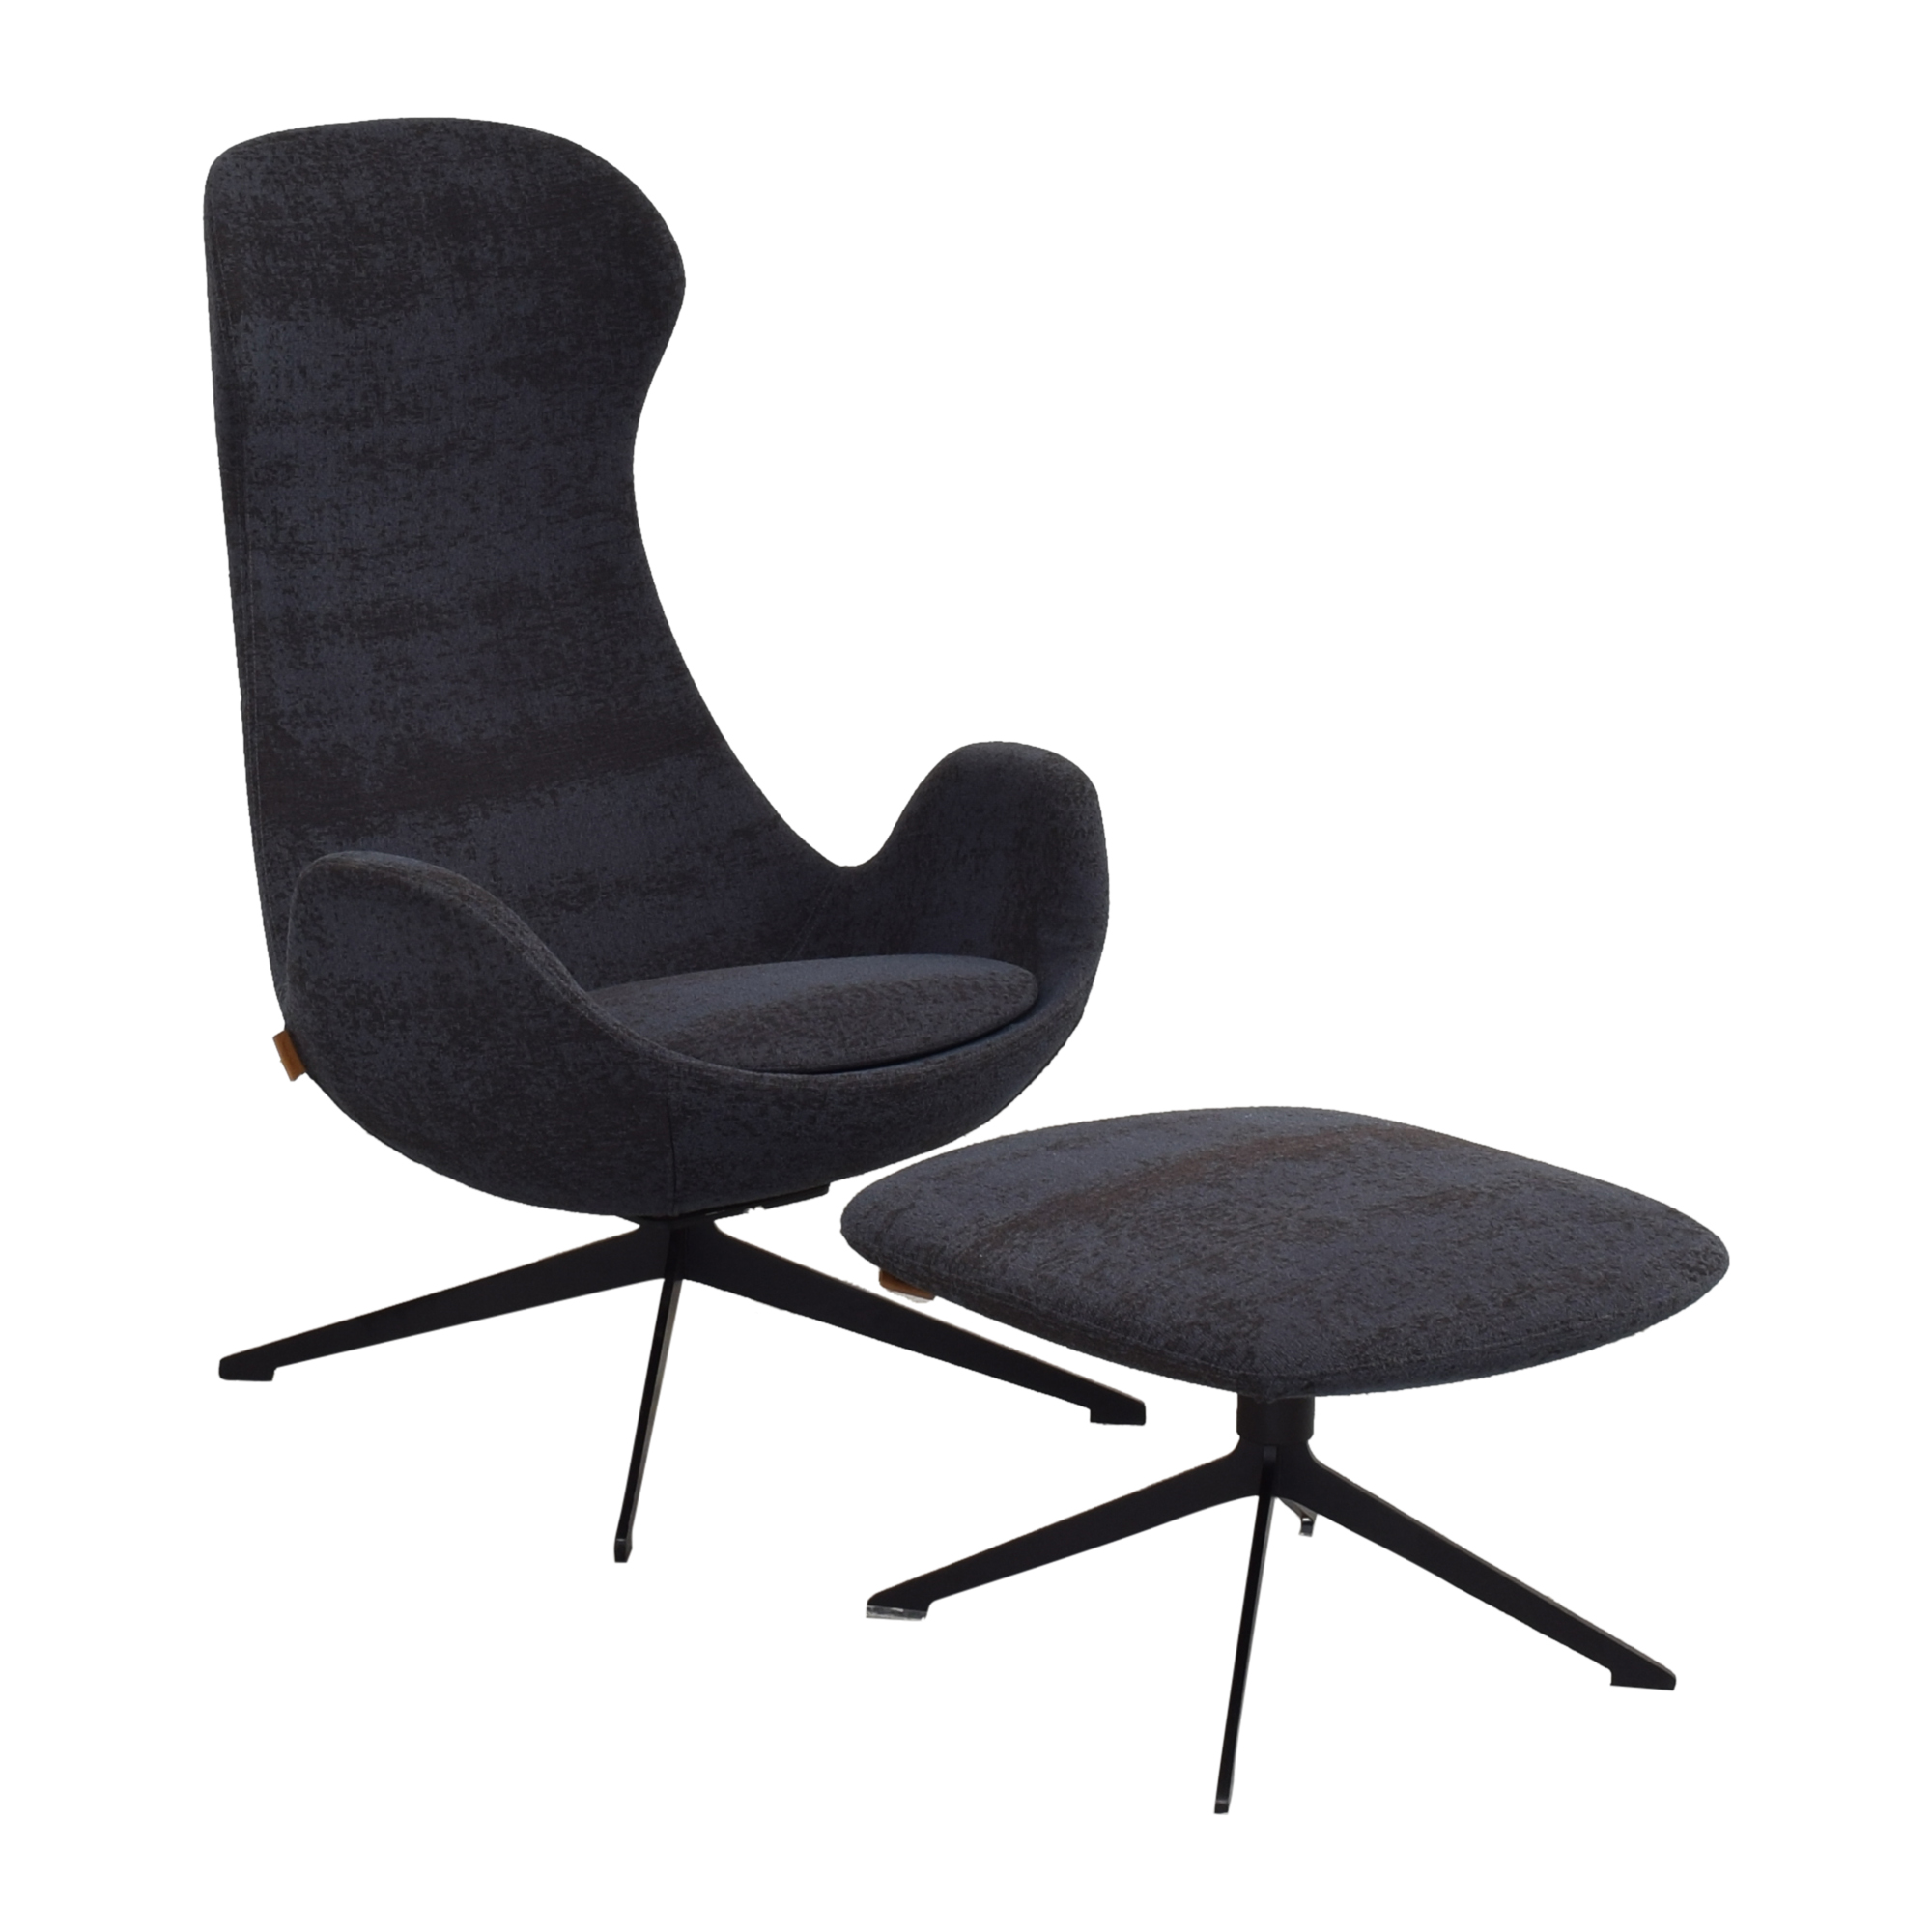 buy Koleksiyon Halia High Back Armchair with Ottoman Koleksiyon Home Office Chairs